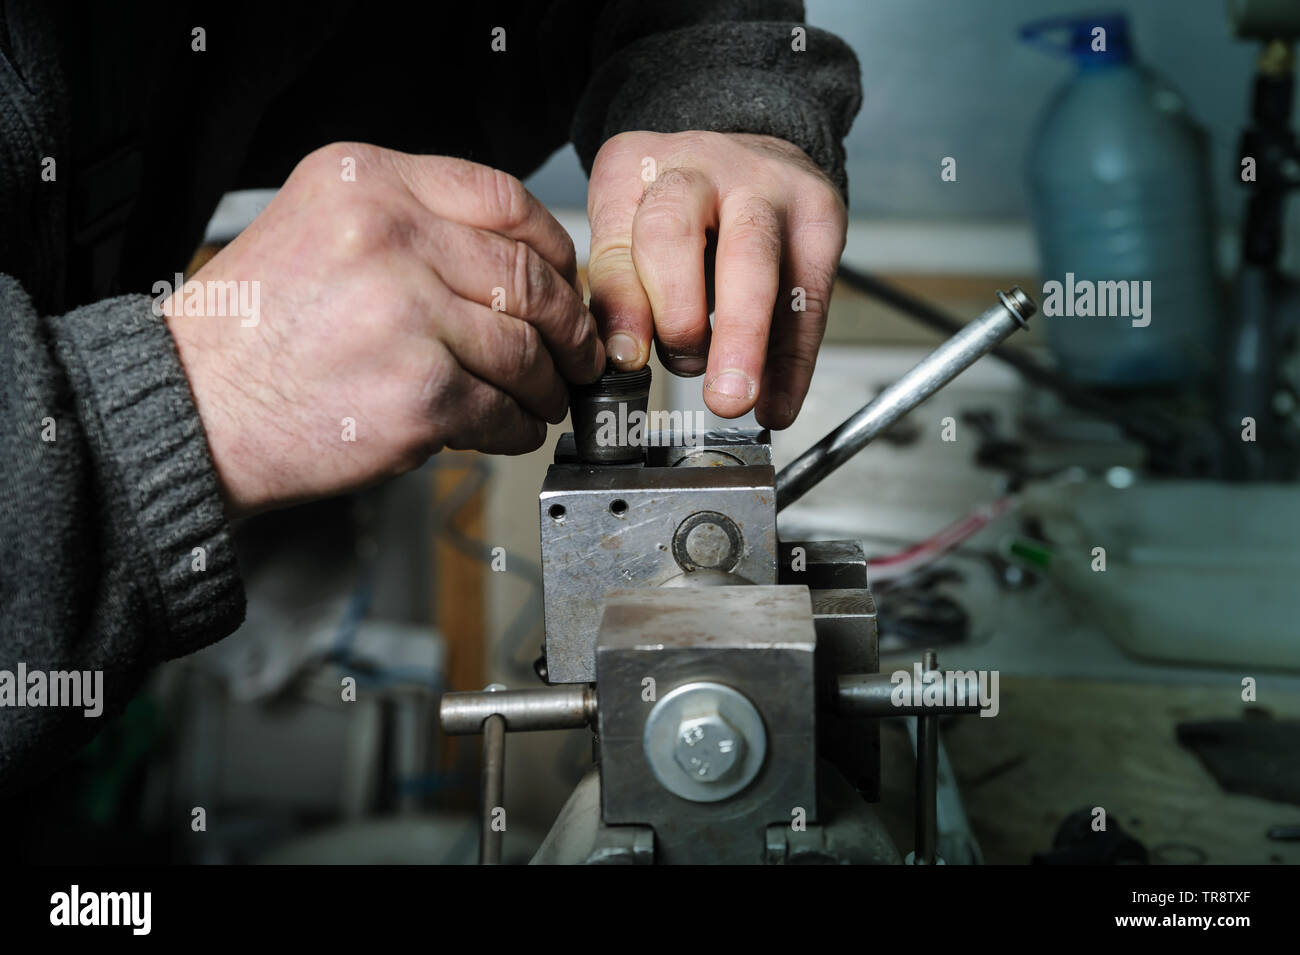 Mechanics repairing a diesel injector. Mans hands disassemble a injector pinched in a vise. - Stock Image